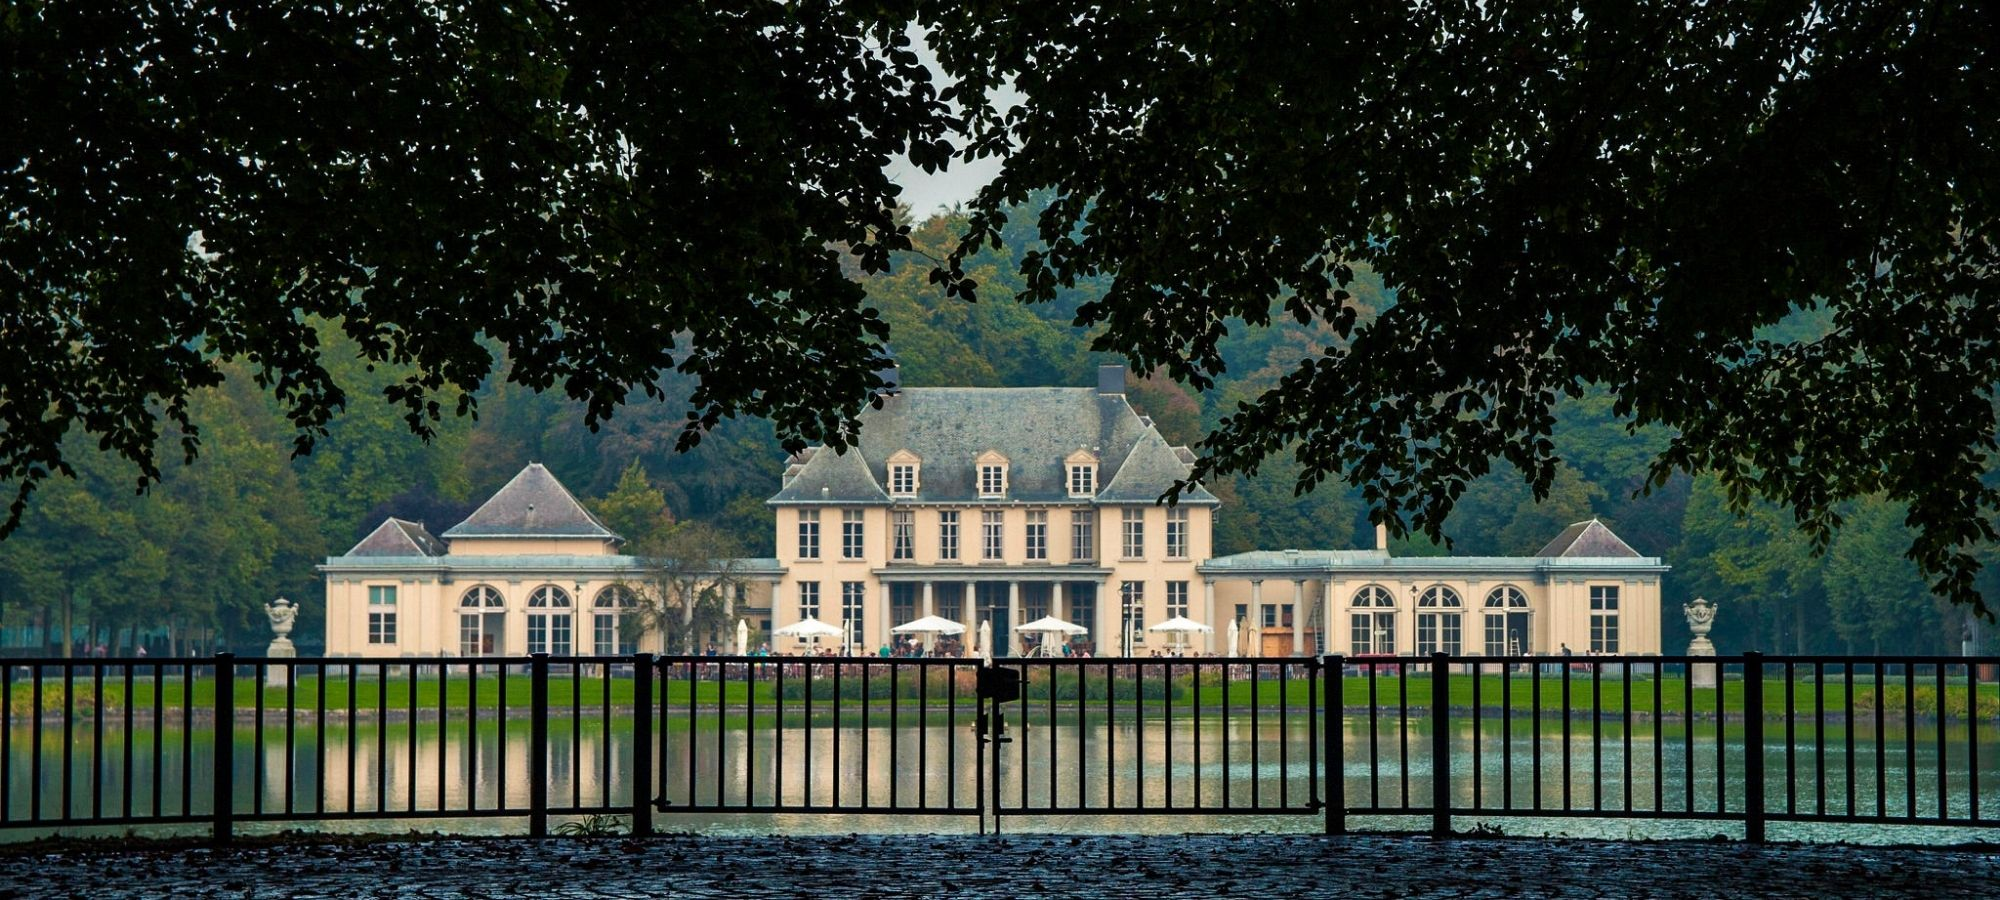 18th century Rivierenhof castle, in Classicism style, stands behind a black fence and wide pond